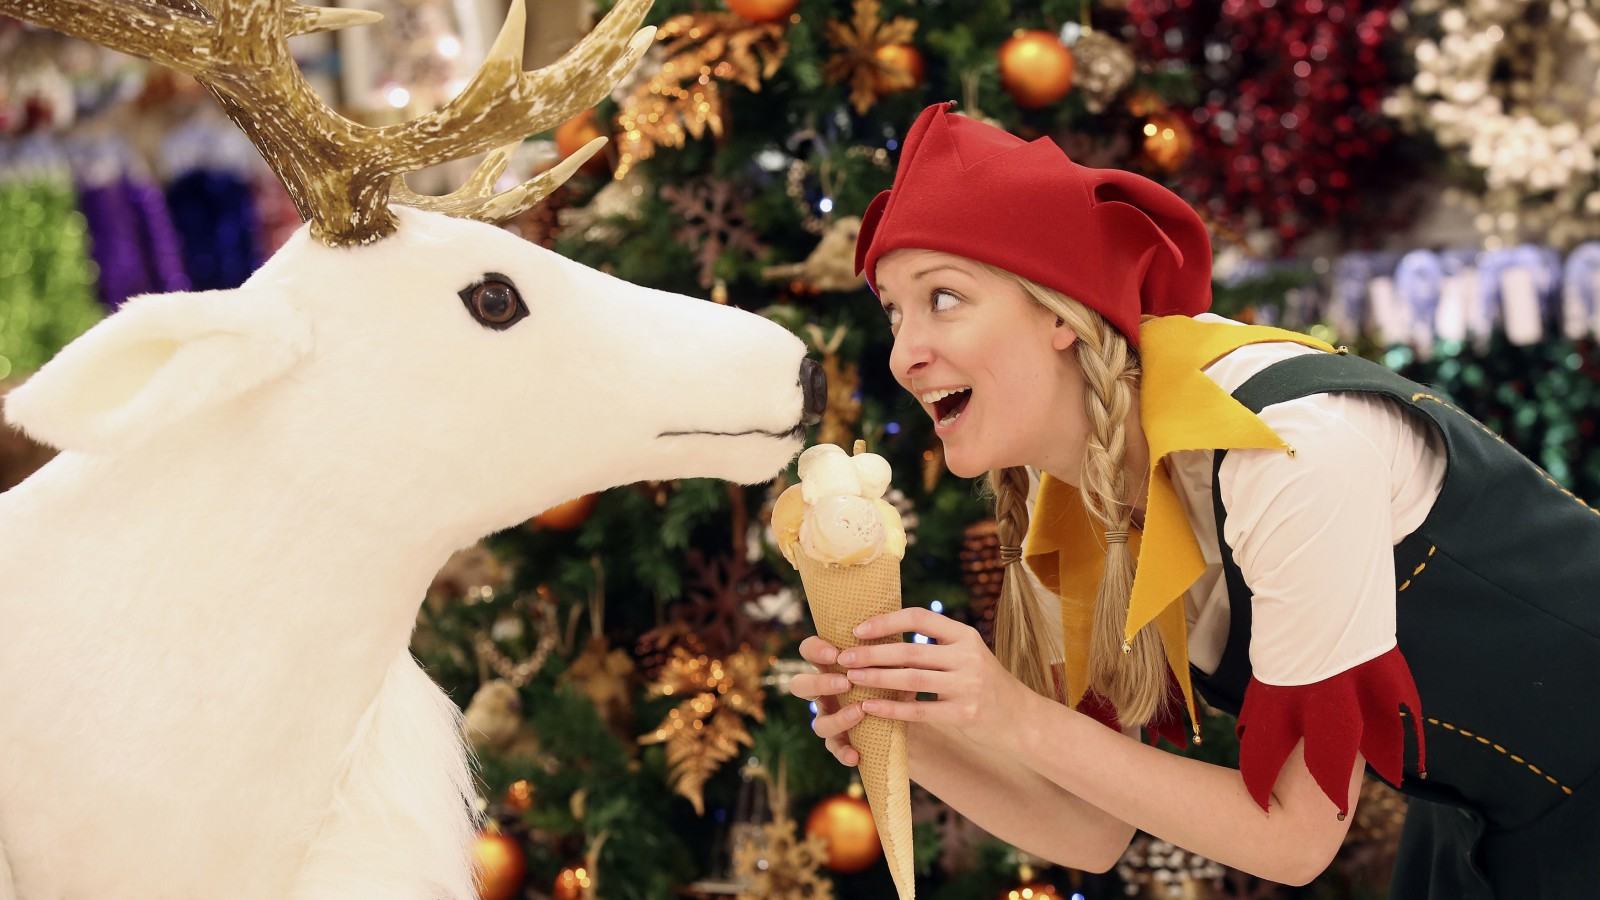 An Elf poses for a photograph in Selfridges department store,Oxford street,London August 3, 2015. Selfridges is the first department store in the world to launch its Christmas Shop today.   Picture by Paul Hackett.  07779 340110     For more information on the story contact Bruno on 0207 318 3204 or Jillian on 0207 318 3987  This picture is free.